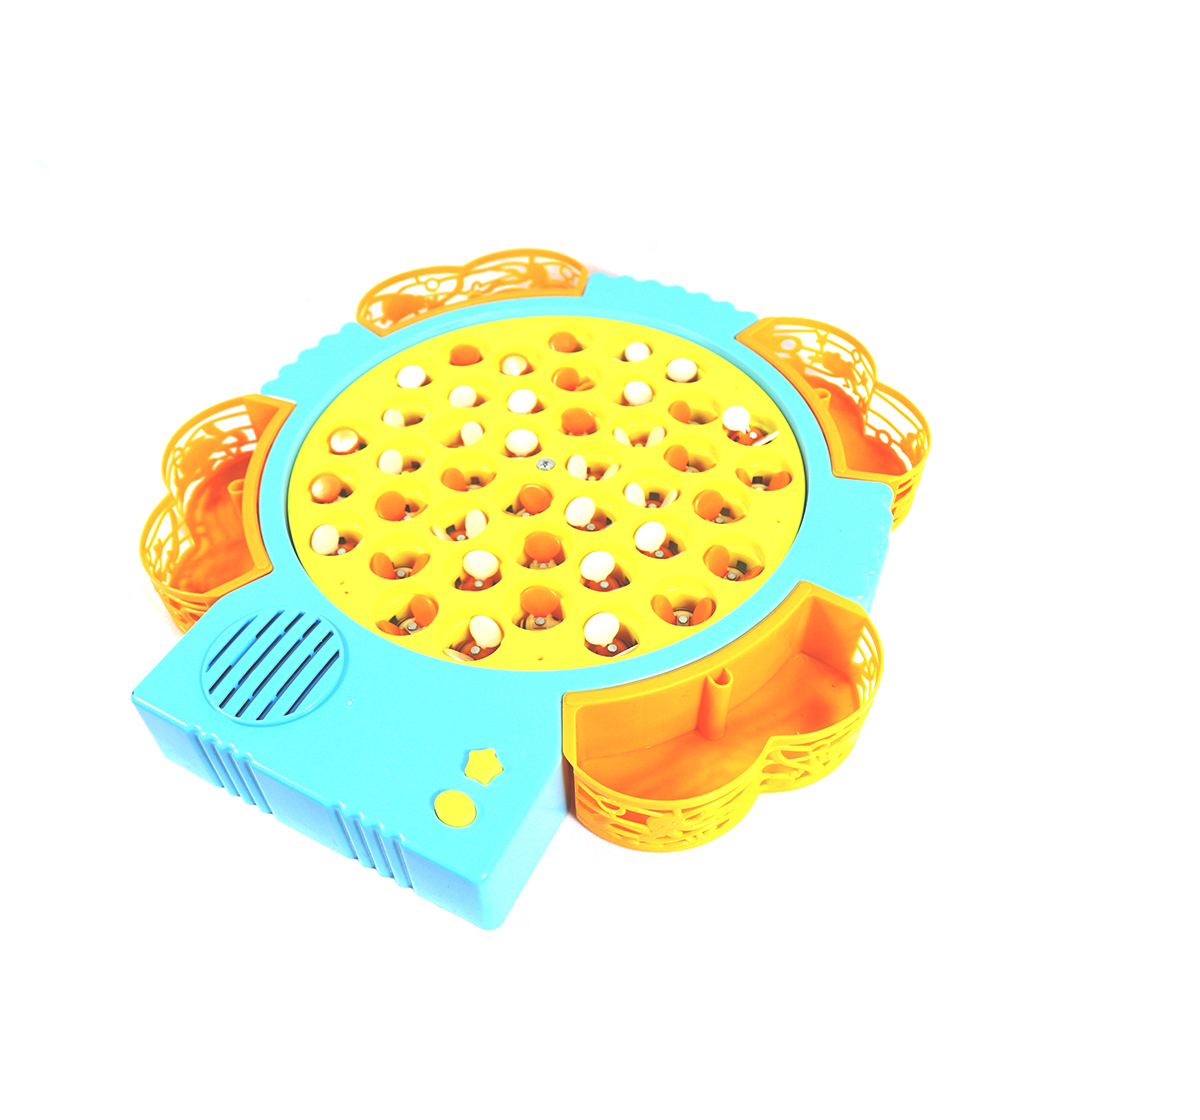 Youreka | Youreka Rotating Musical Bee Catcher Game - 42 Bees And 4 Magnectic Rods Games for Kids age 3Y+